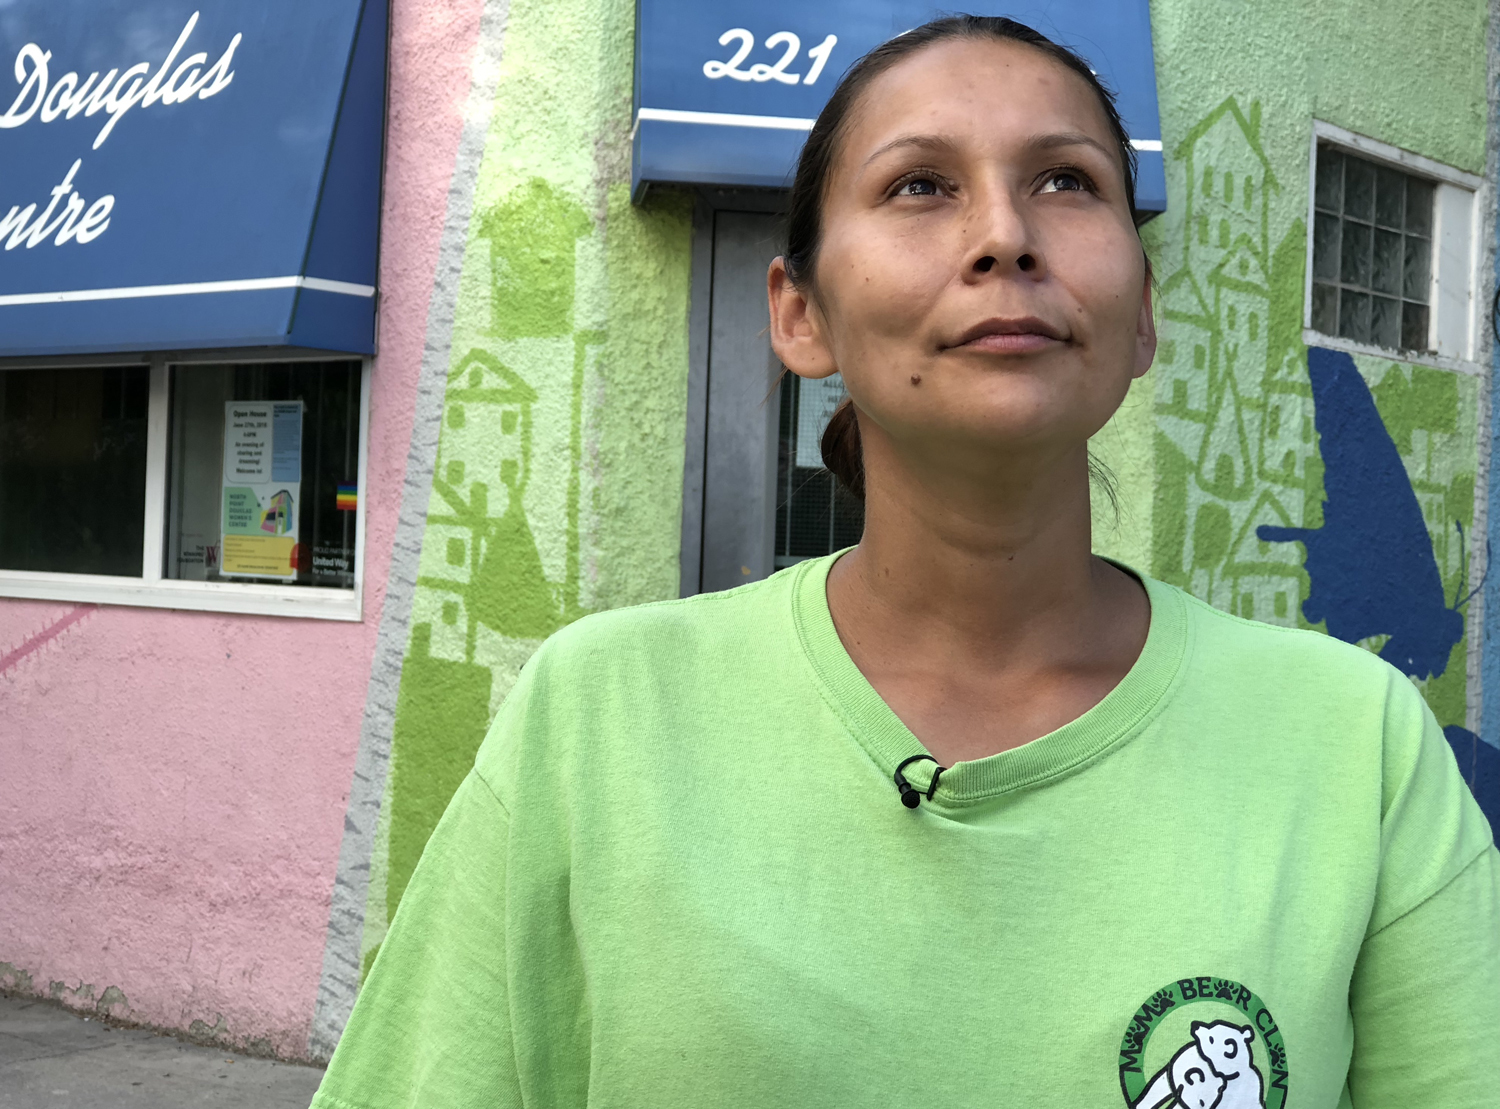 Samantha Chief offers a warm, open and nurturing presence to people on the street in Winnipeg. (Sean Brocklehurst)